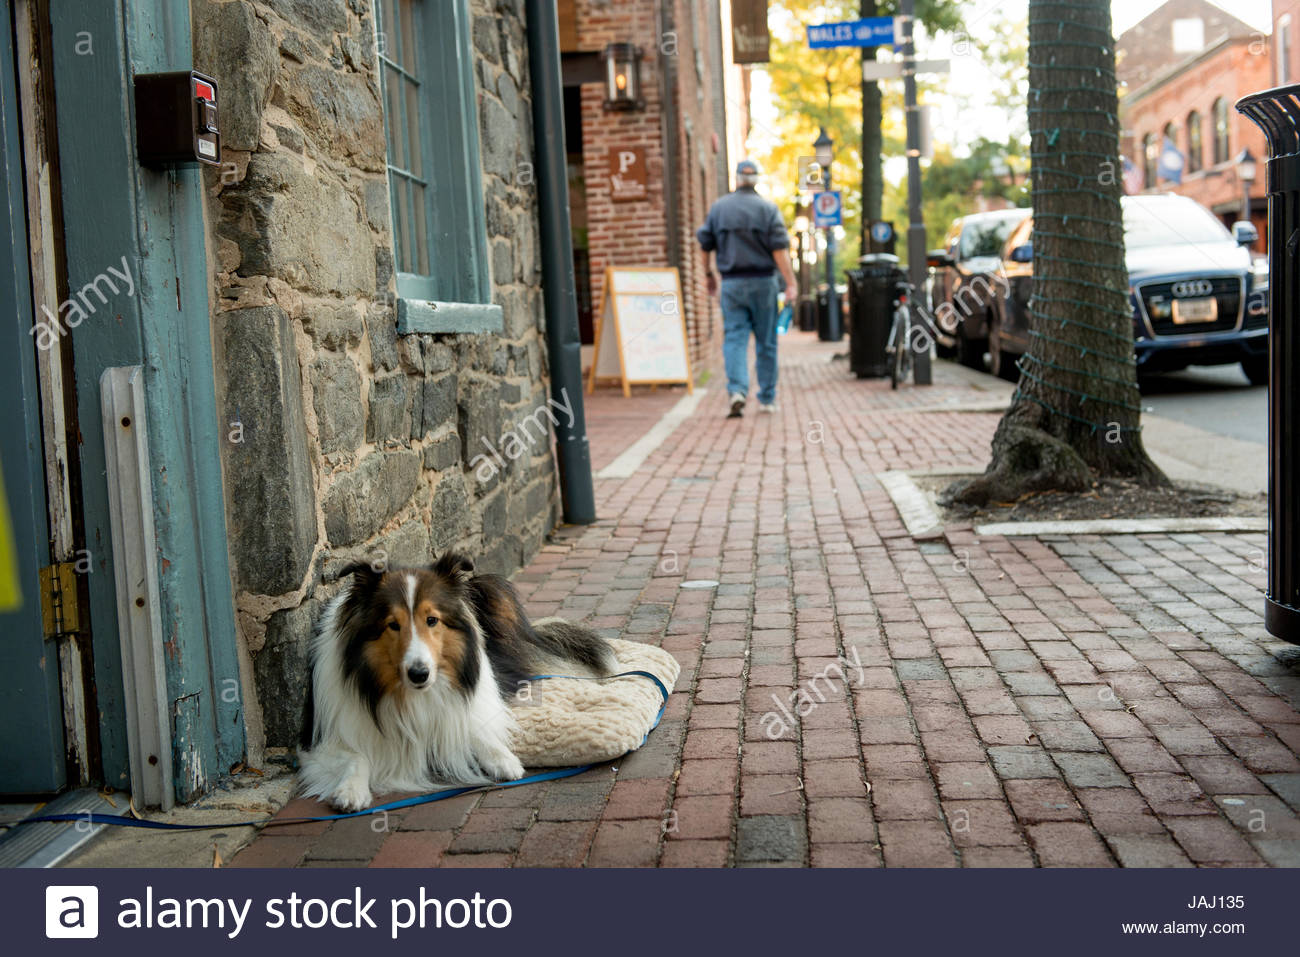 A pet dog rests on a dog bed outside a building Old Town Alexandria. - Stock Image